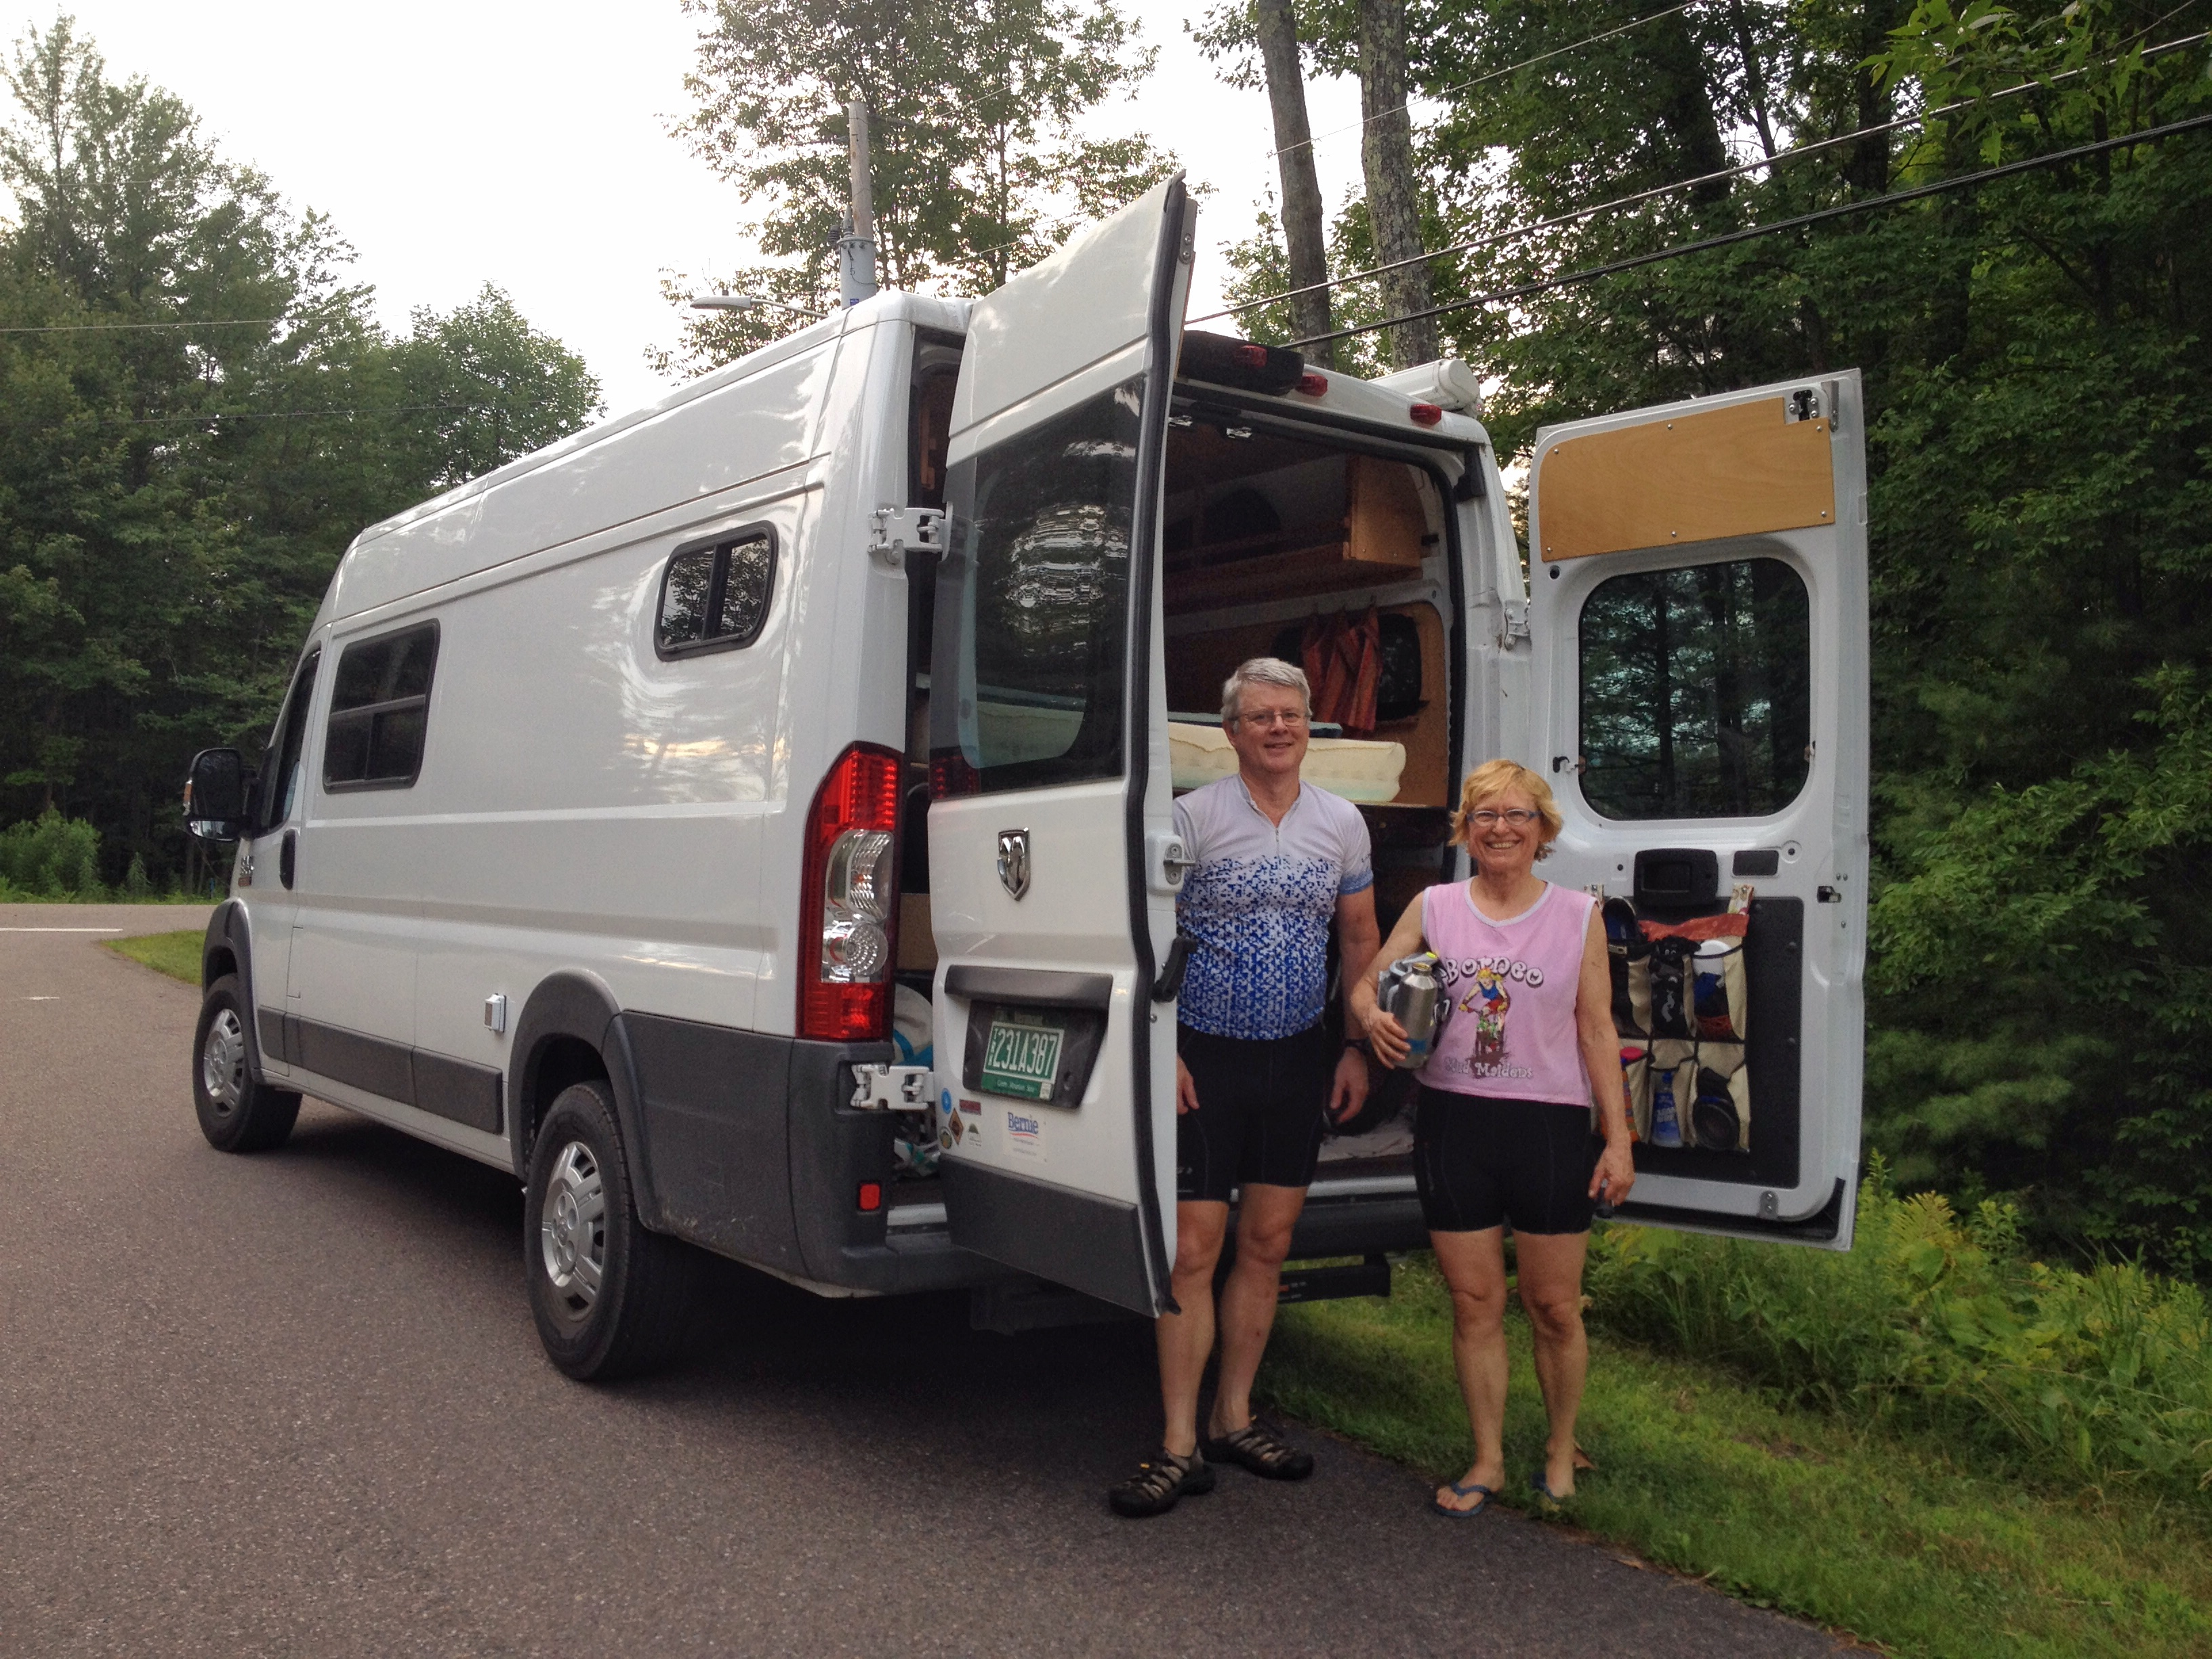 Tom and Cyn with their soon to be home on wheels, Frosty. (©Britt Nielsen)